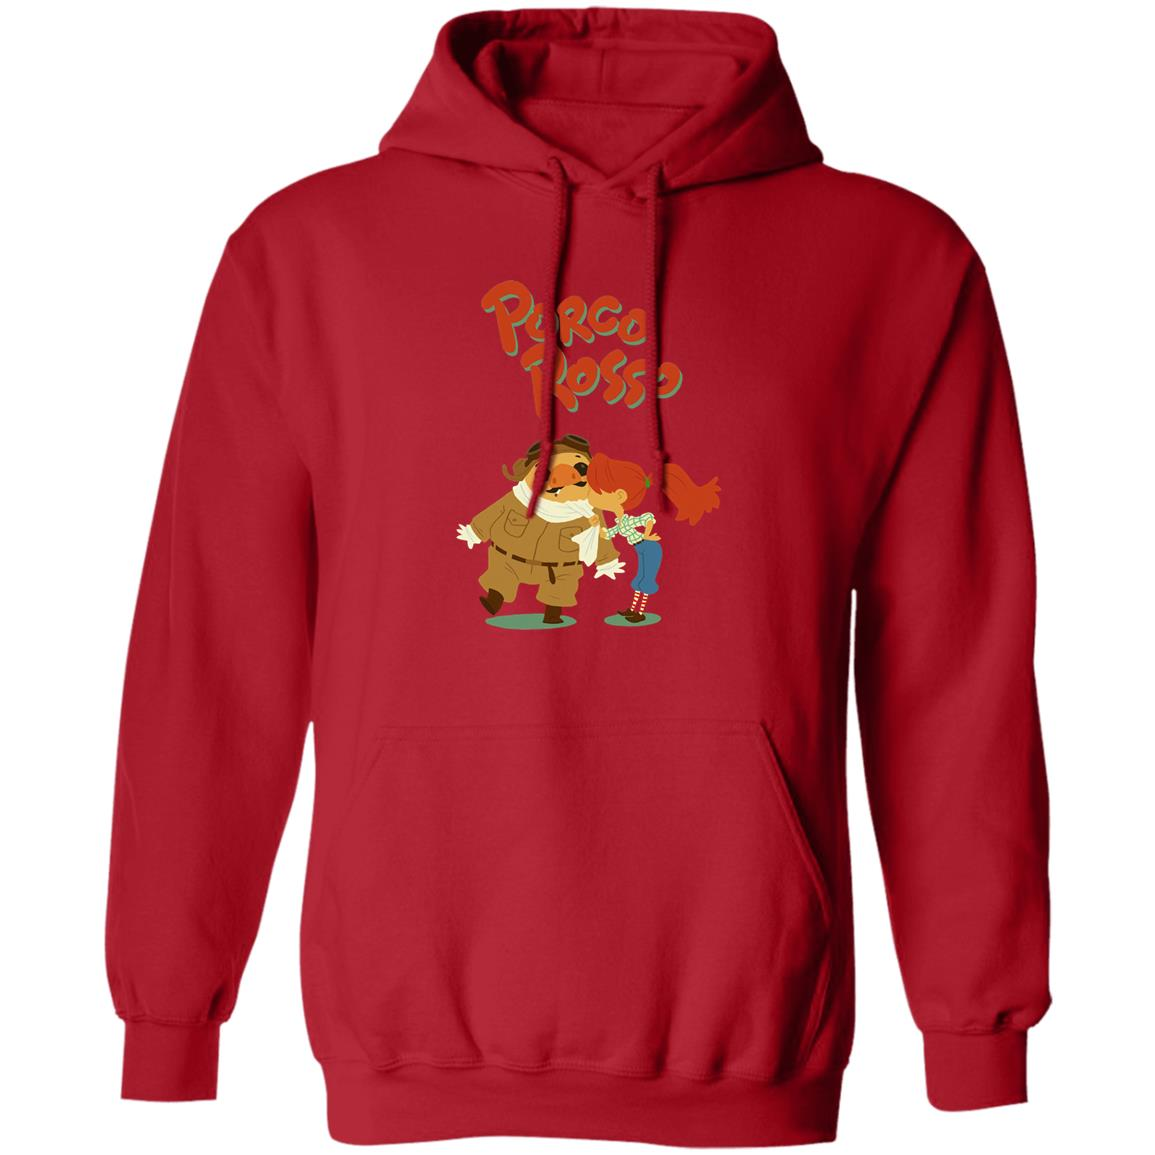 Porco Rosso – The Kiss  Hoodie